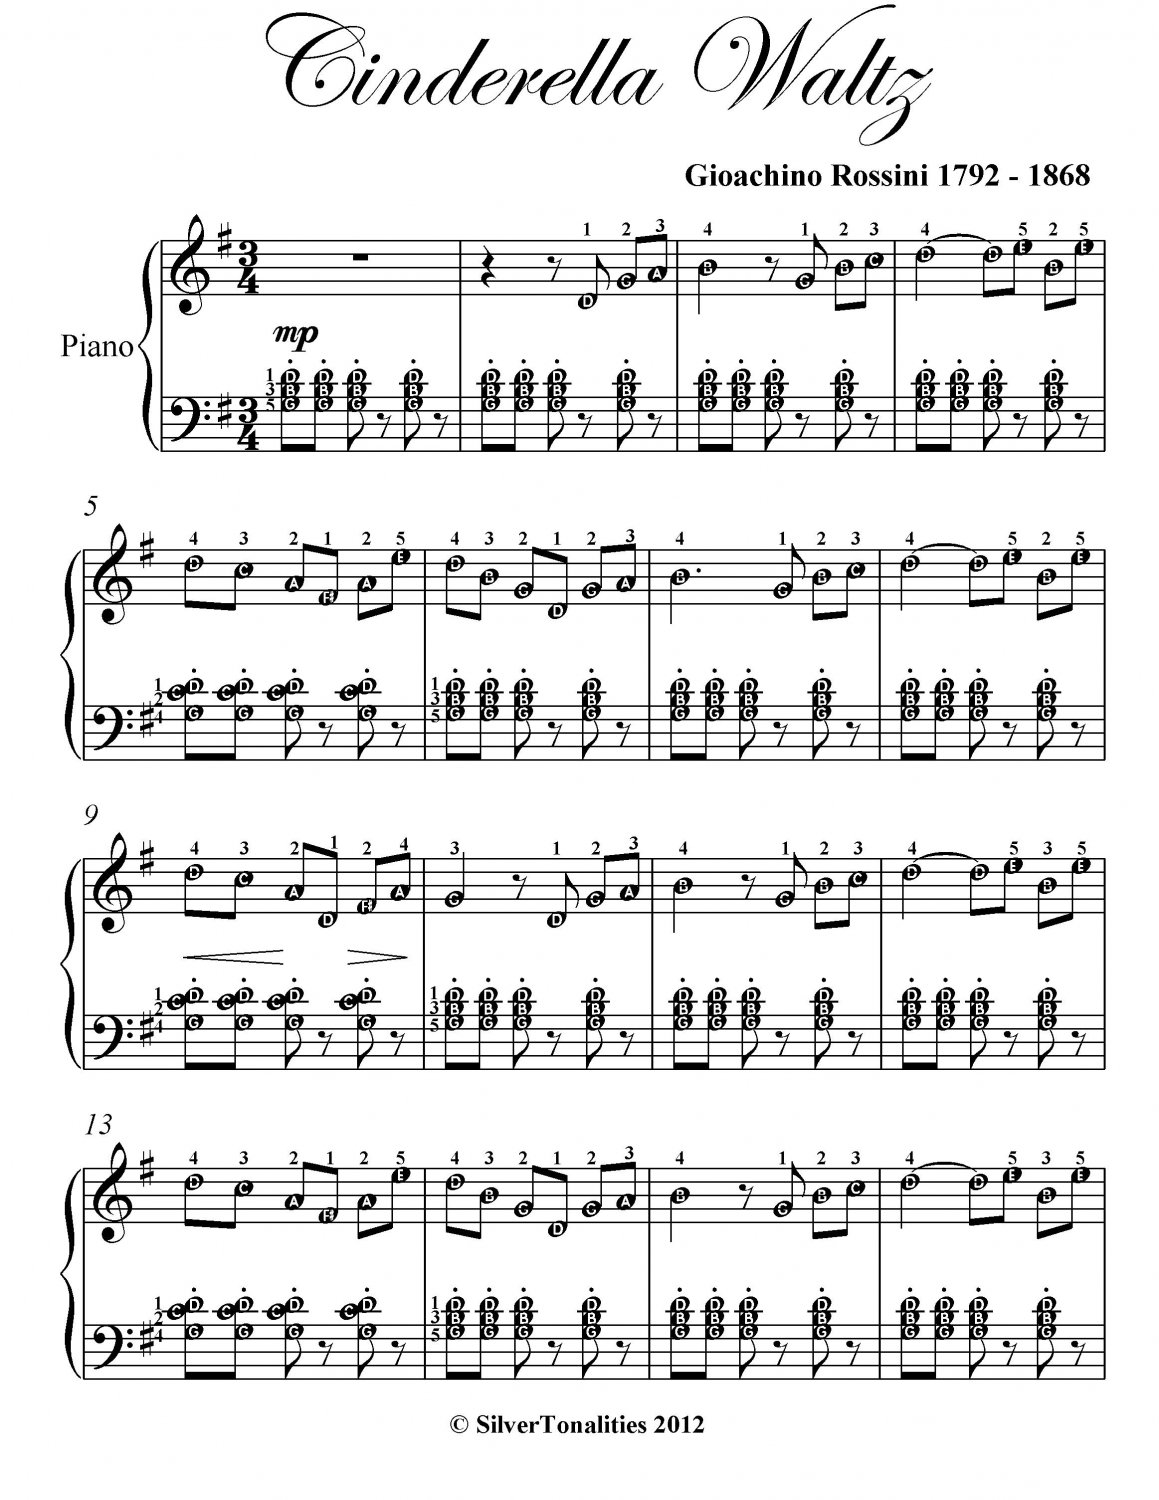 Cinderella Waltz Easy Intermediate Piano Sheet Music PDF